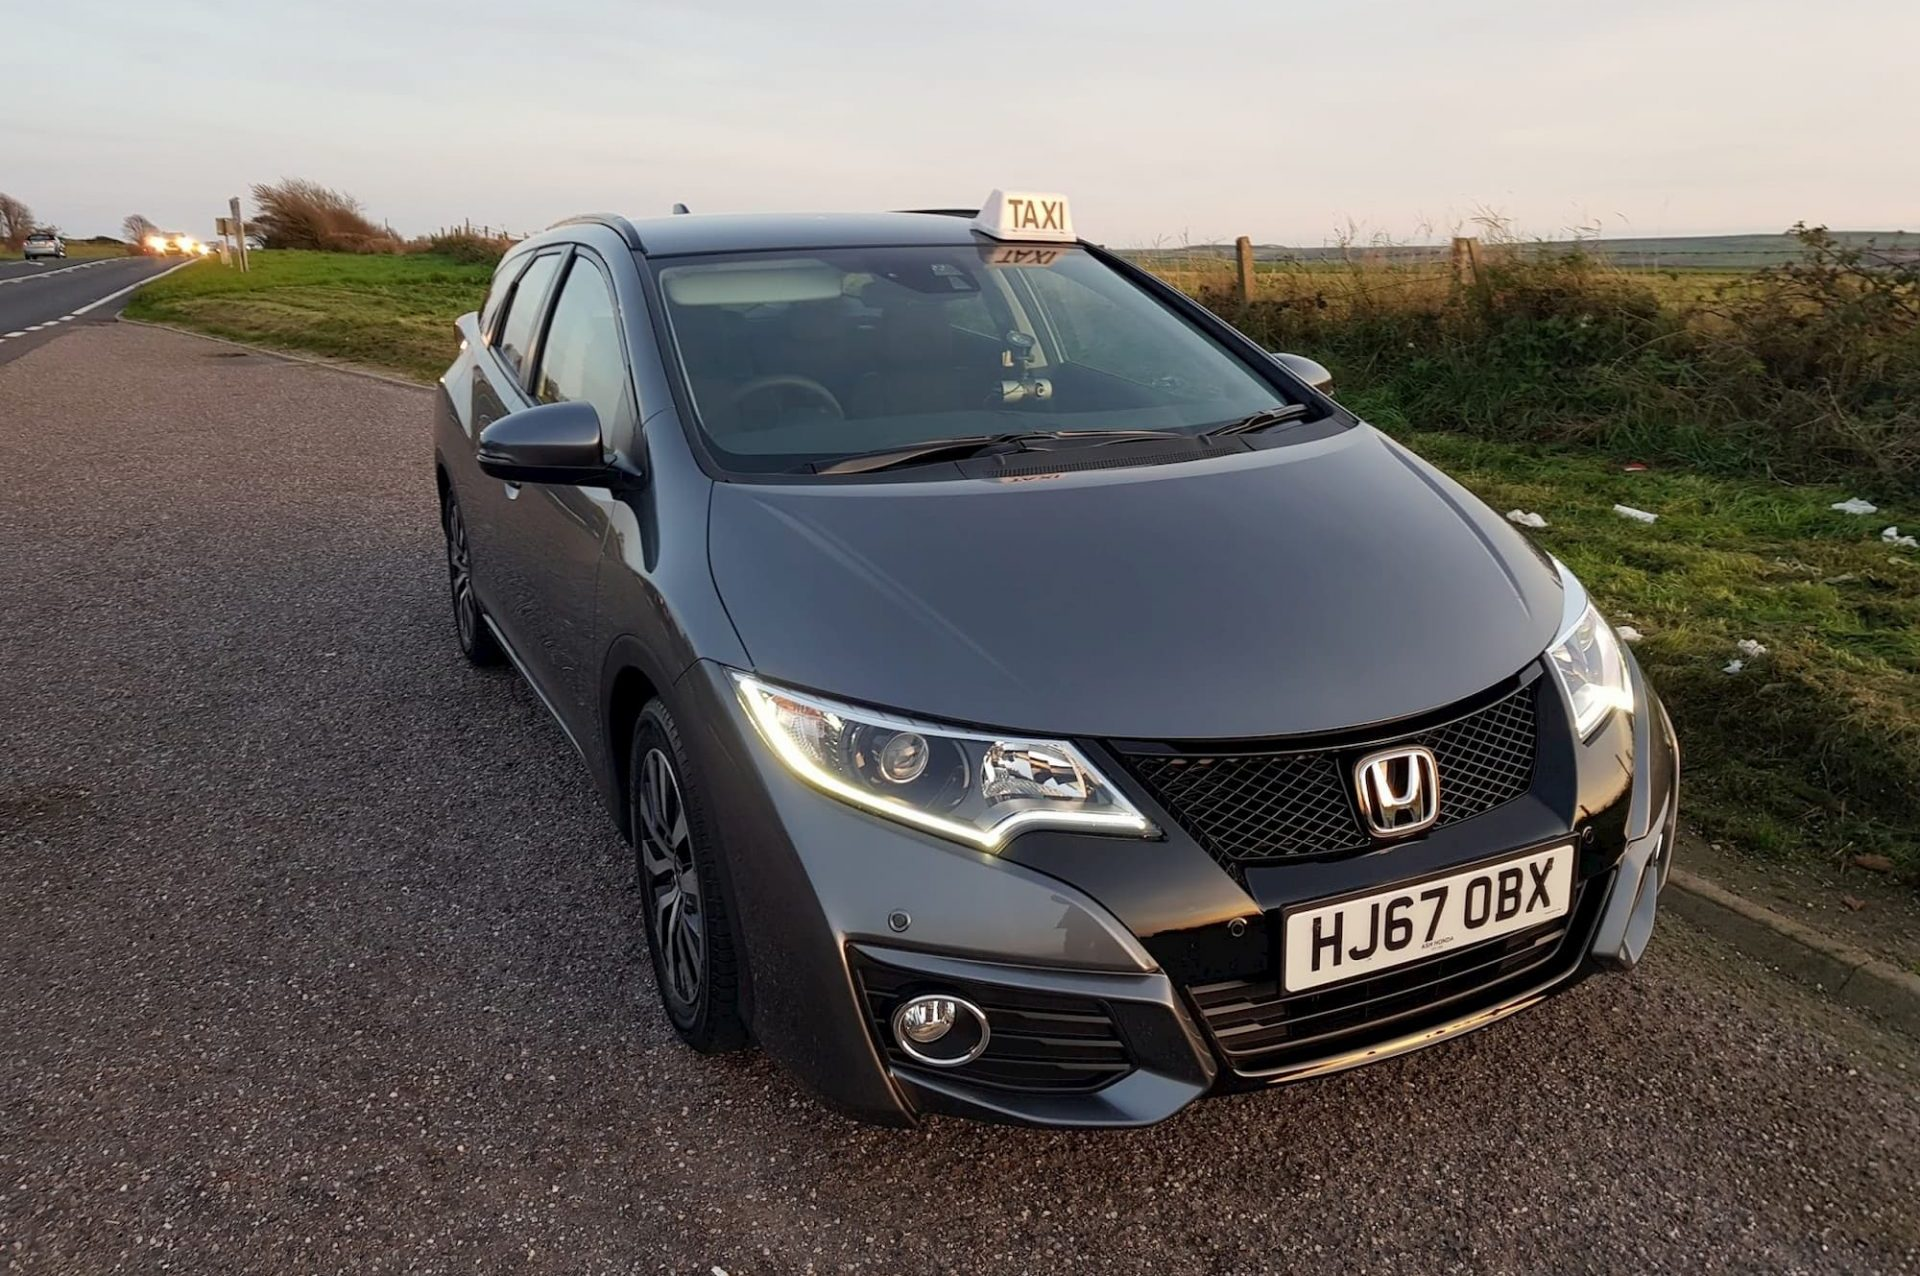 Dorset taxis Honda on countryside background